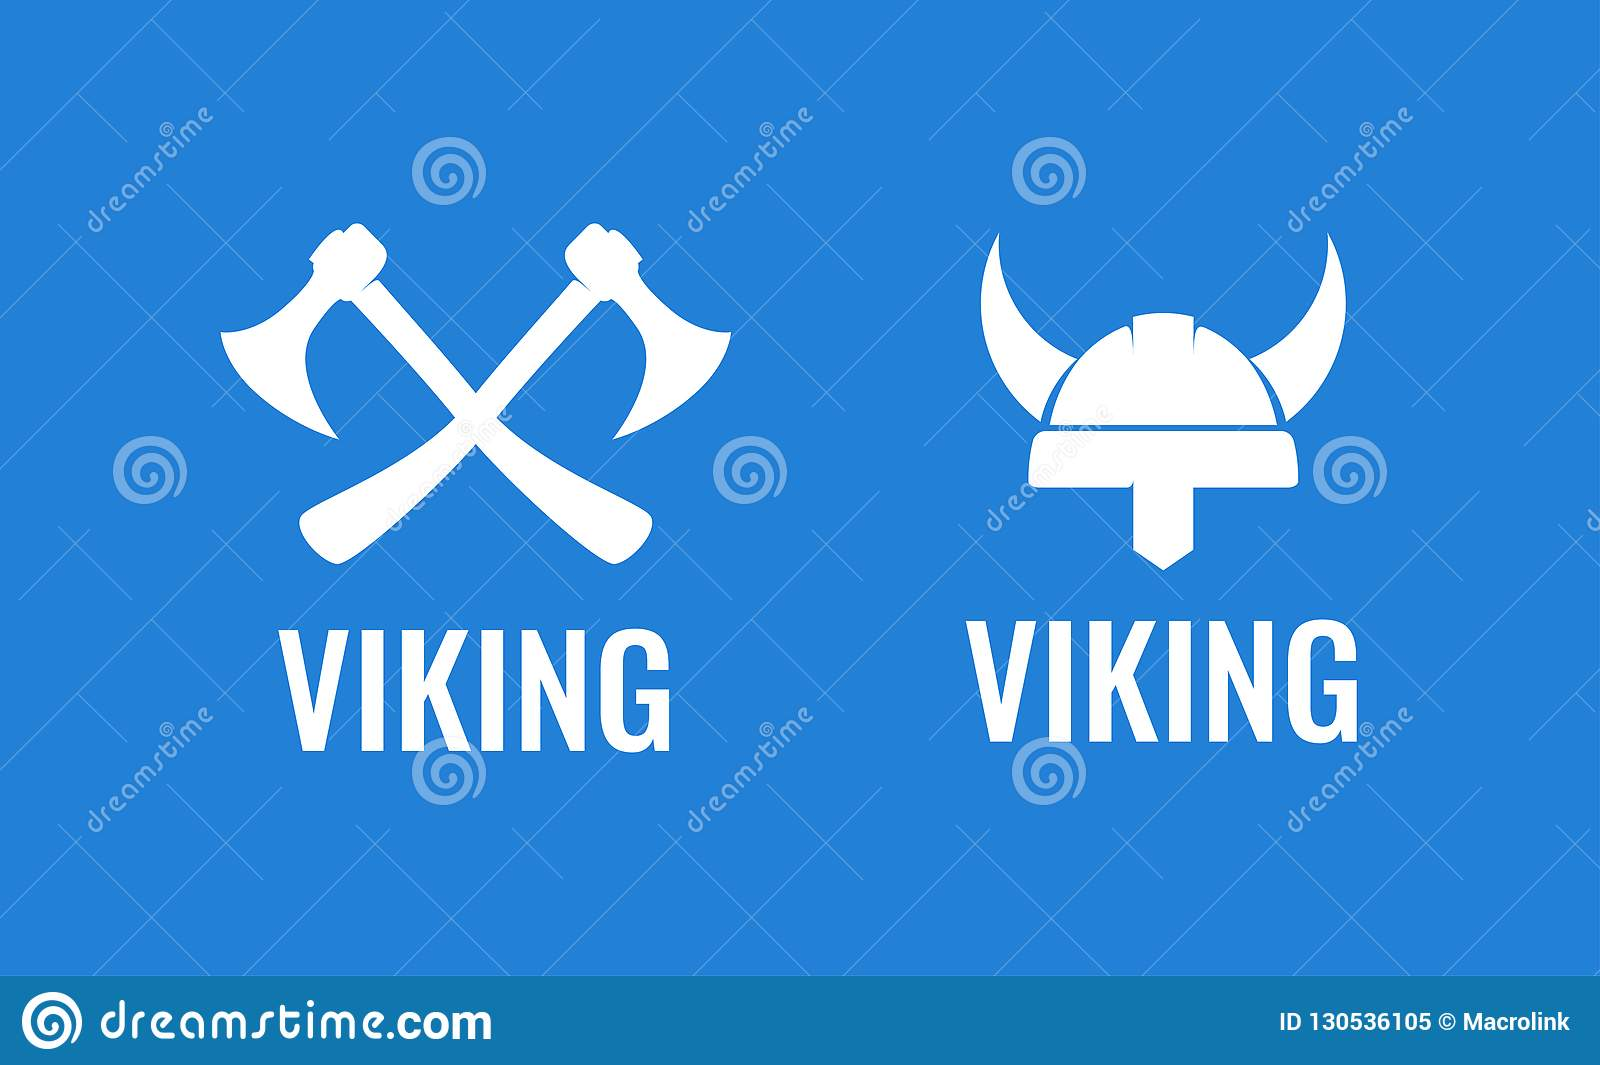 d79d7a9e548c7 Viking flat icon set. Vector Illustration of medieval scandinavian  warriors. Crossed Axes and Helmet